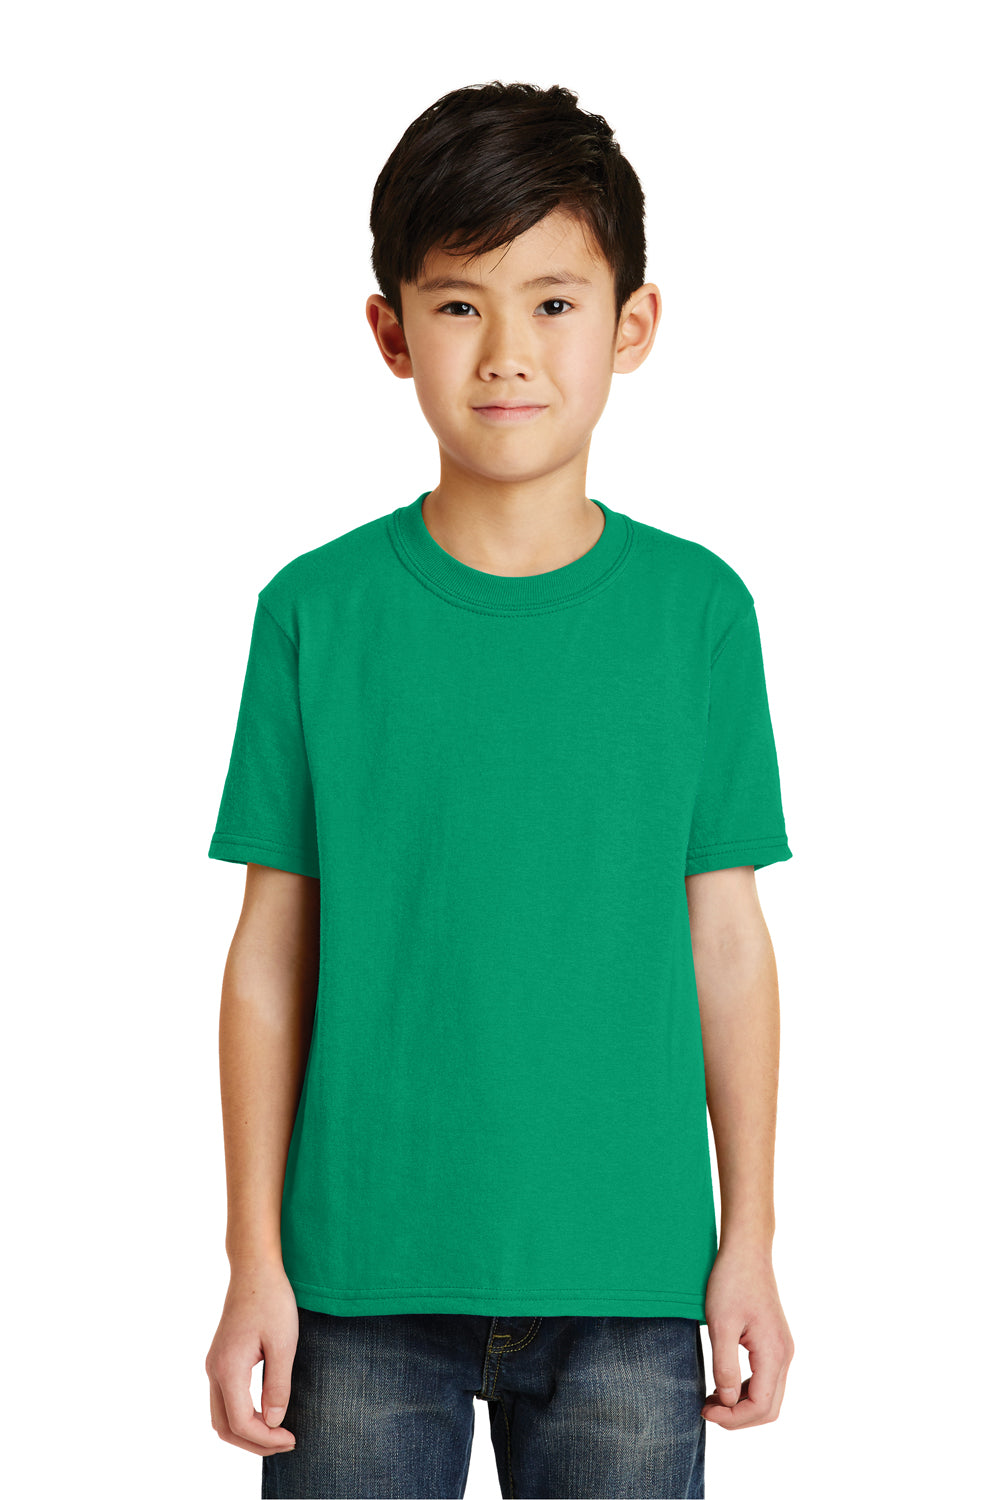 Port & Company PC55Y Youth Core Short Sleeve Crewneck T-Shirt Kelly Green Front